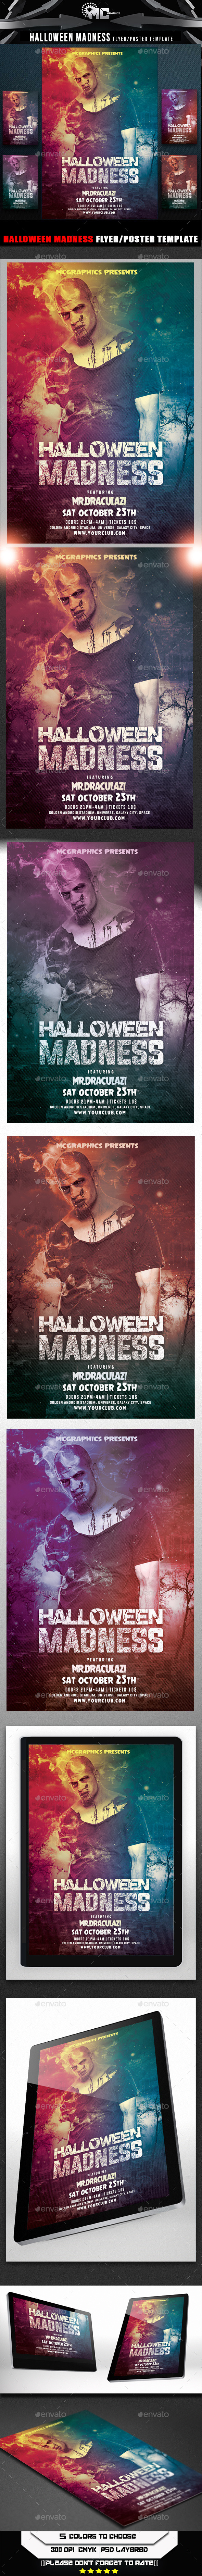 Halloween Madness Flyer Template